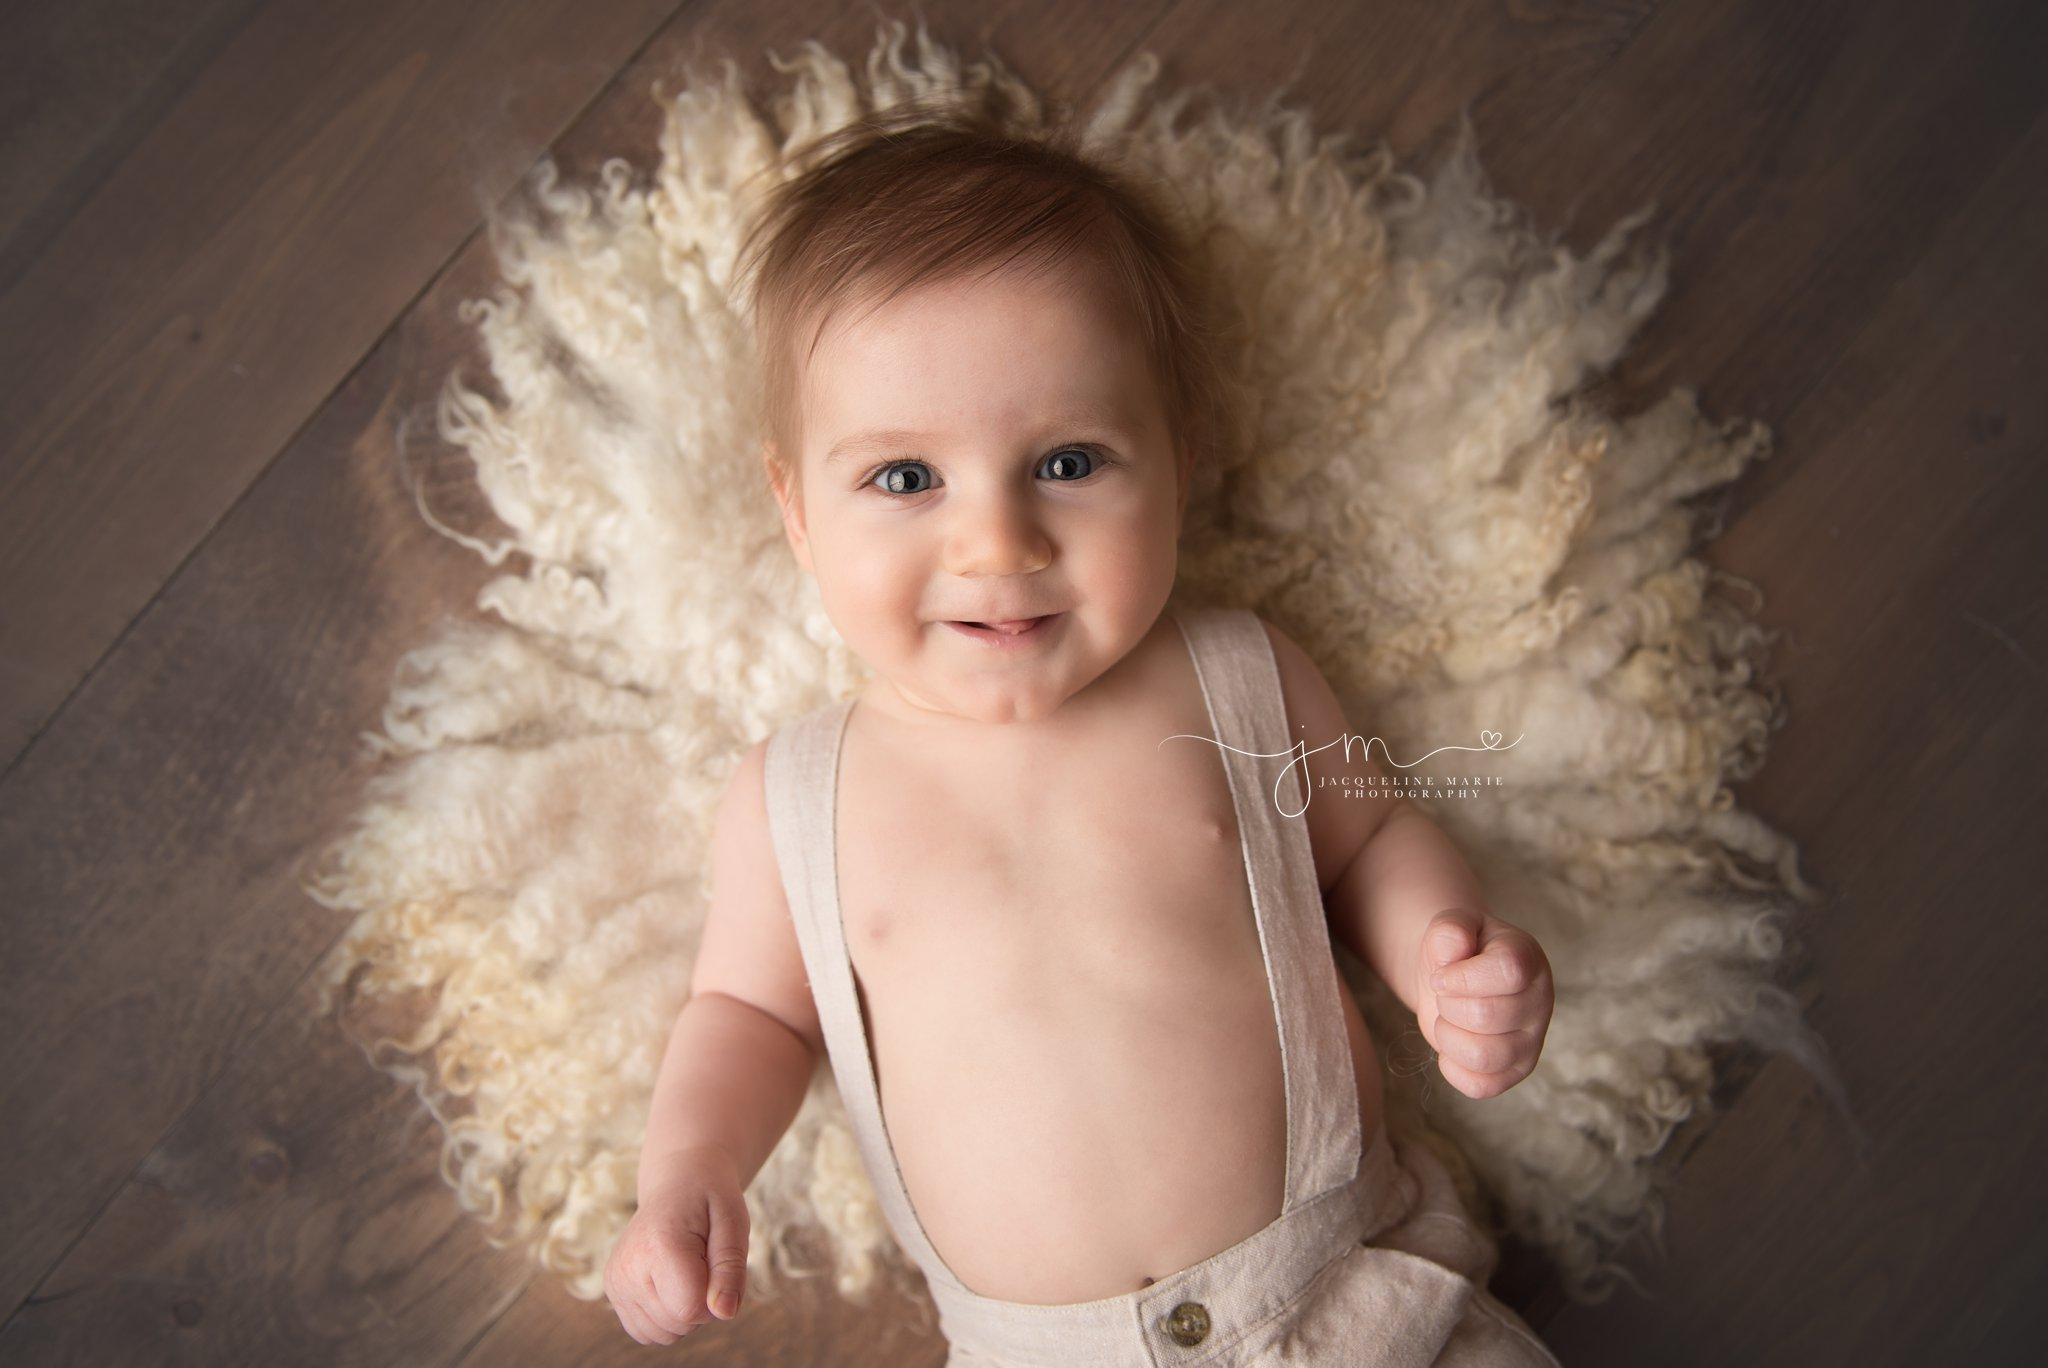 columbus ohio baby photographer features image of baby boy smiling and laying on cream wool curly layer in portrait studio for milestone session